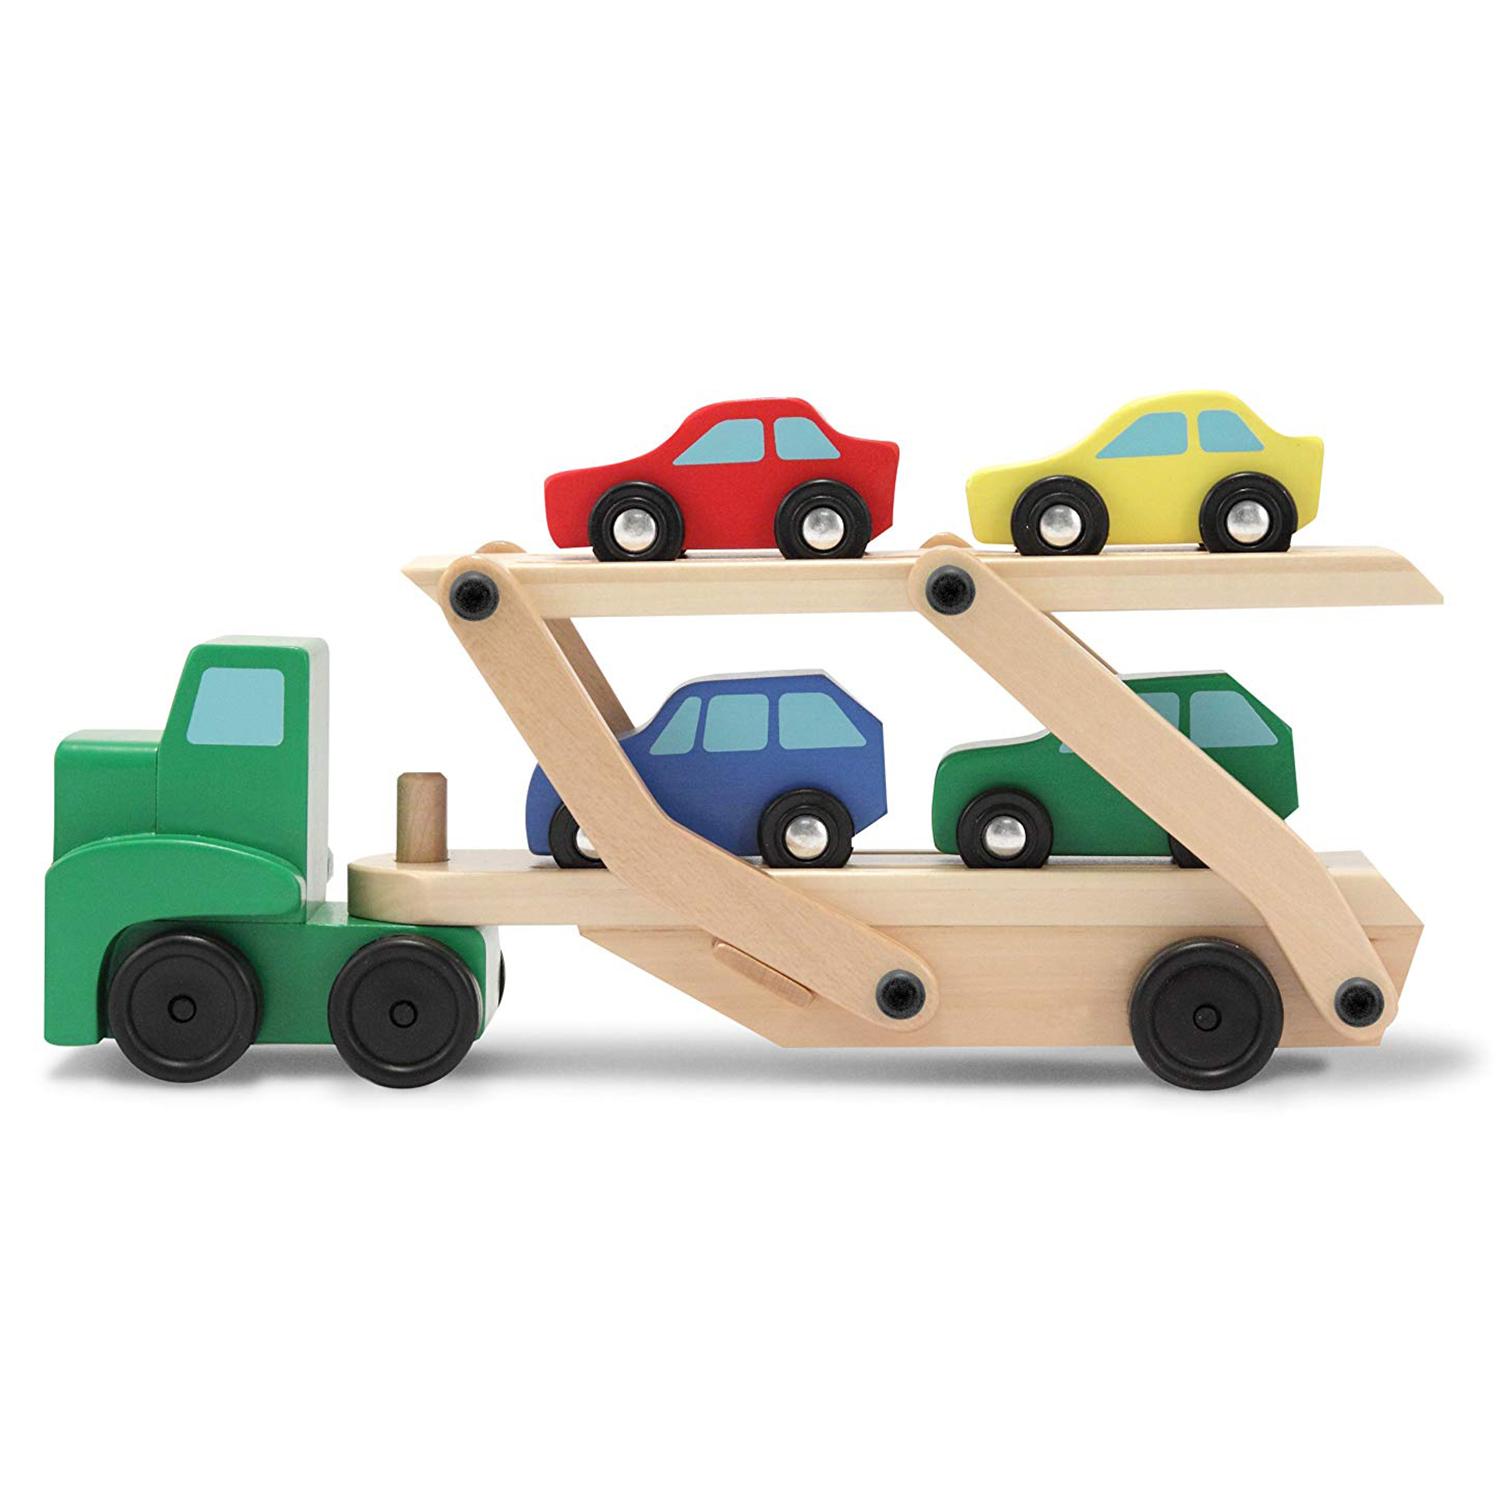 Car Carrier Truck And Cars Wooden Toy Set With 1 Truck And 4 Cars